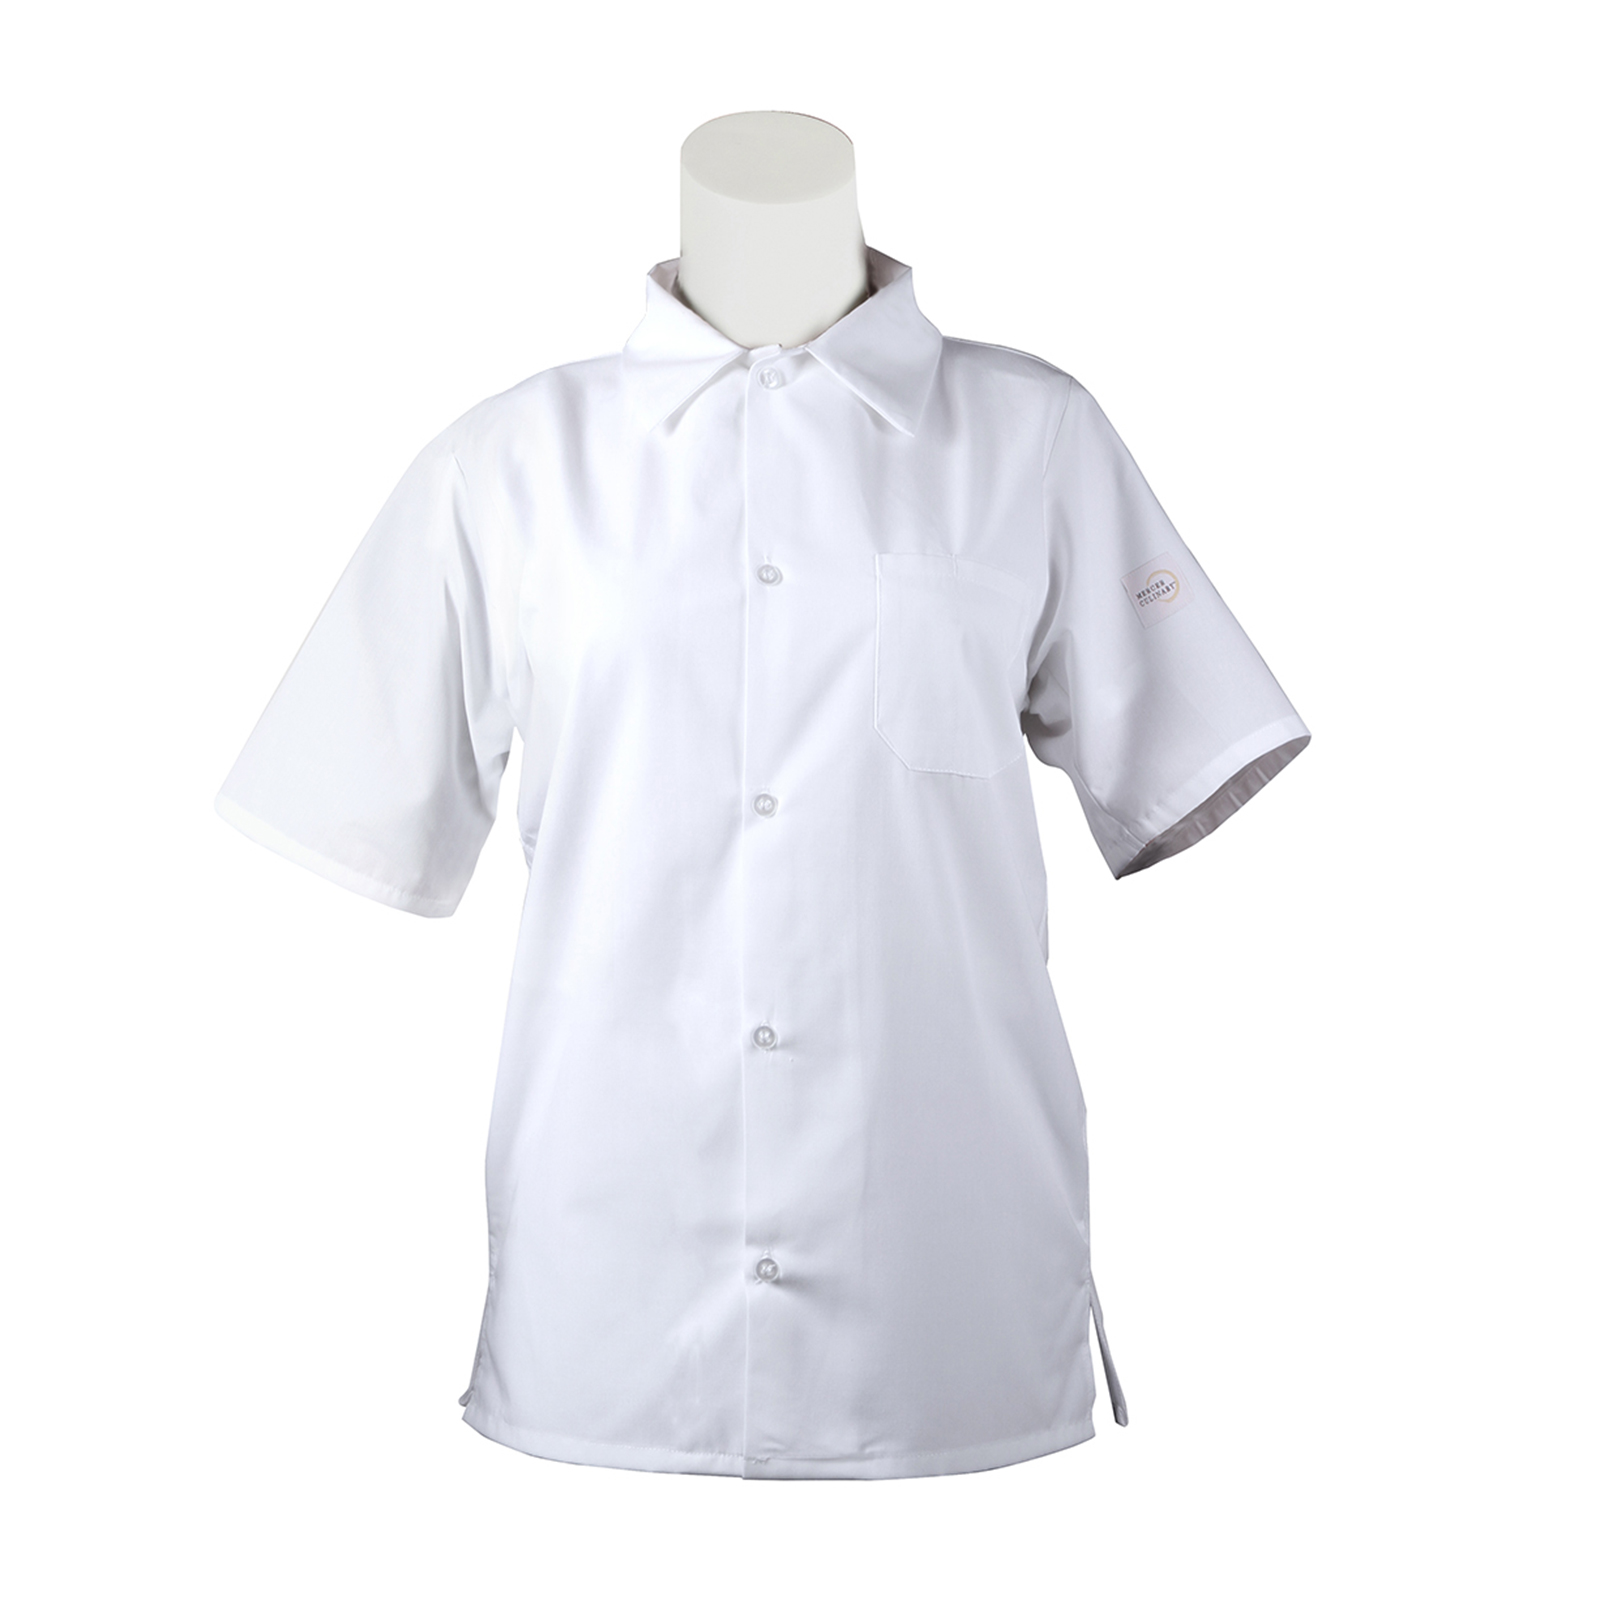 Mercer Culinary M60200WH8X cook's shirt